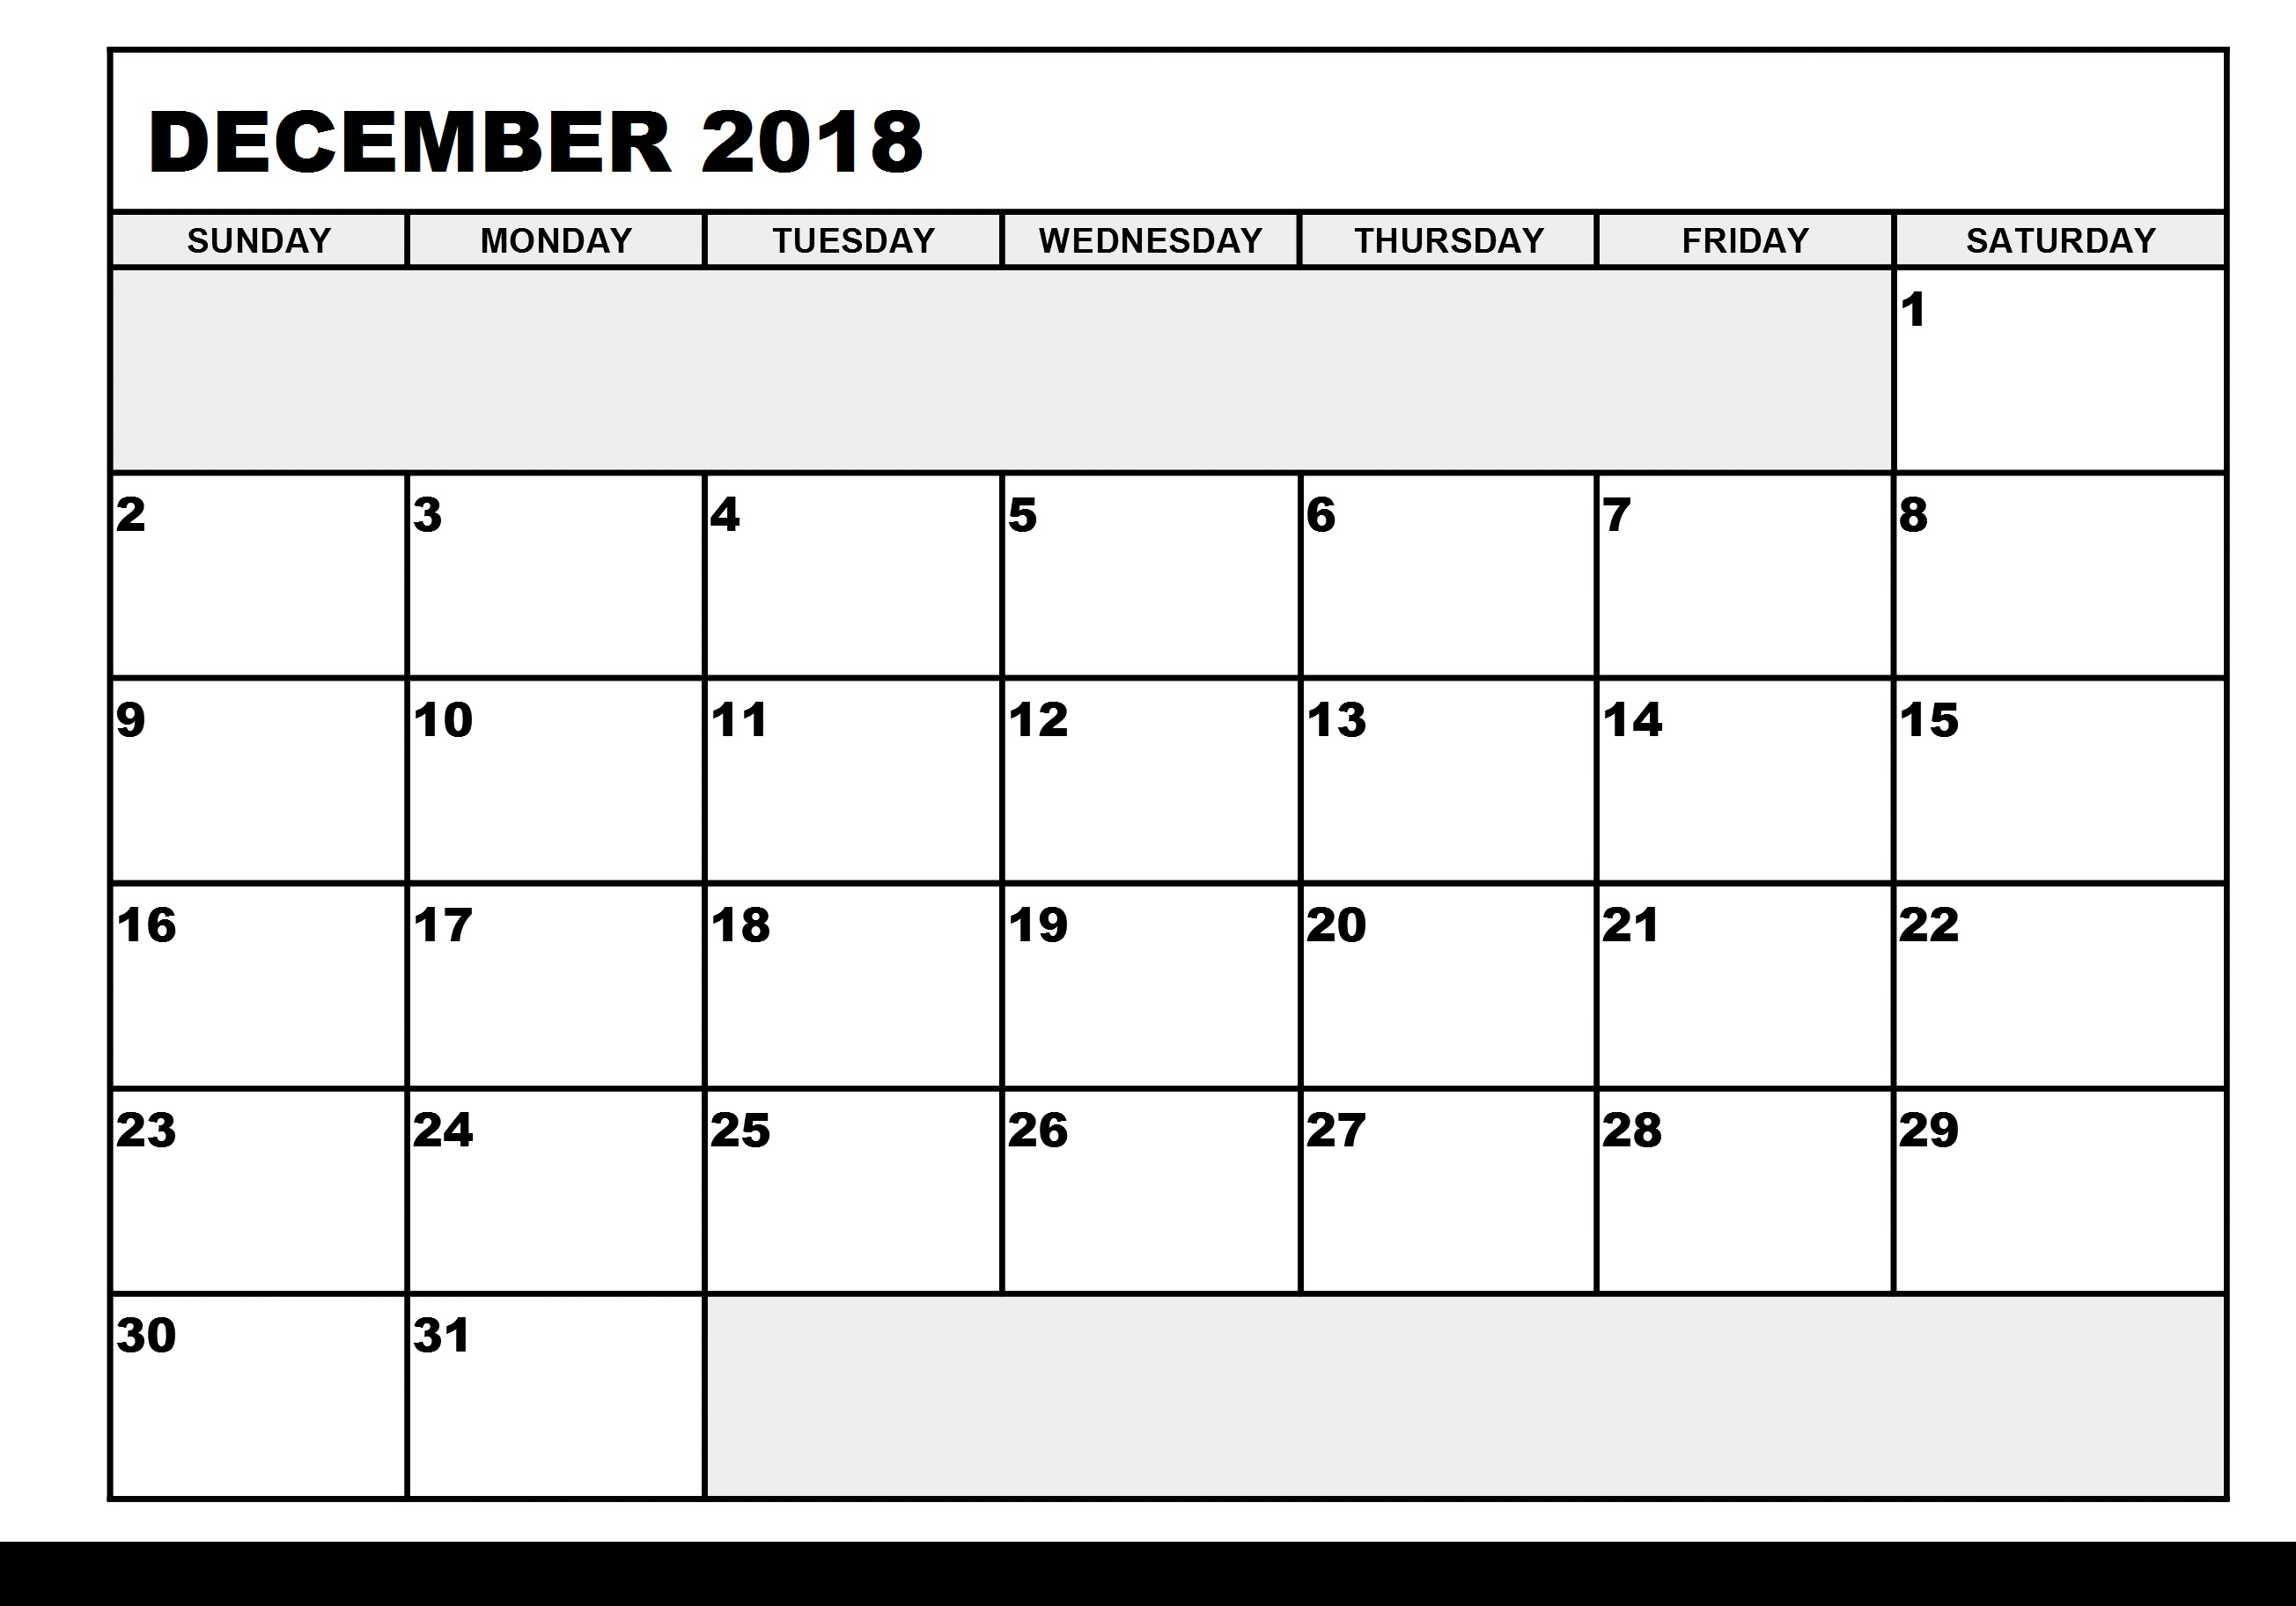 December Calendar 2018 Manage Work Pictures